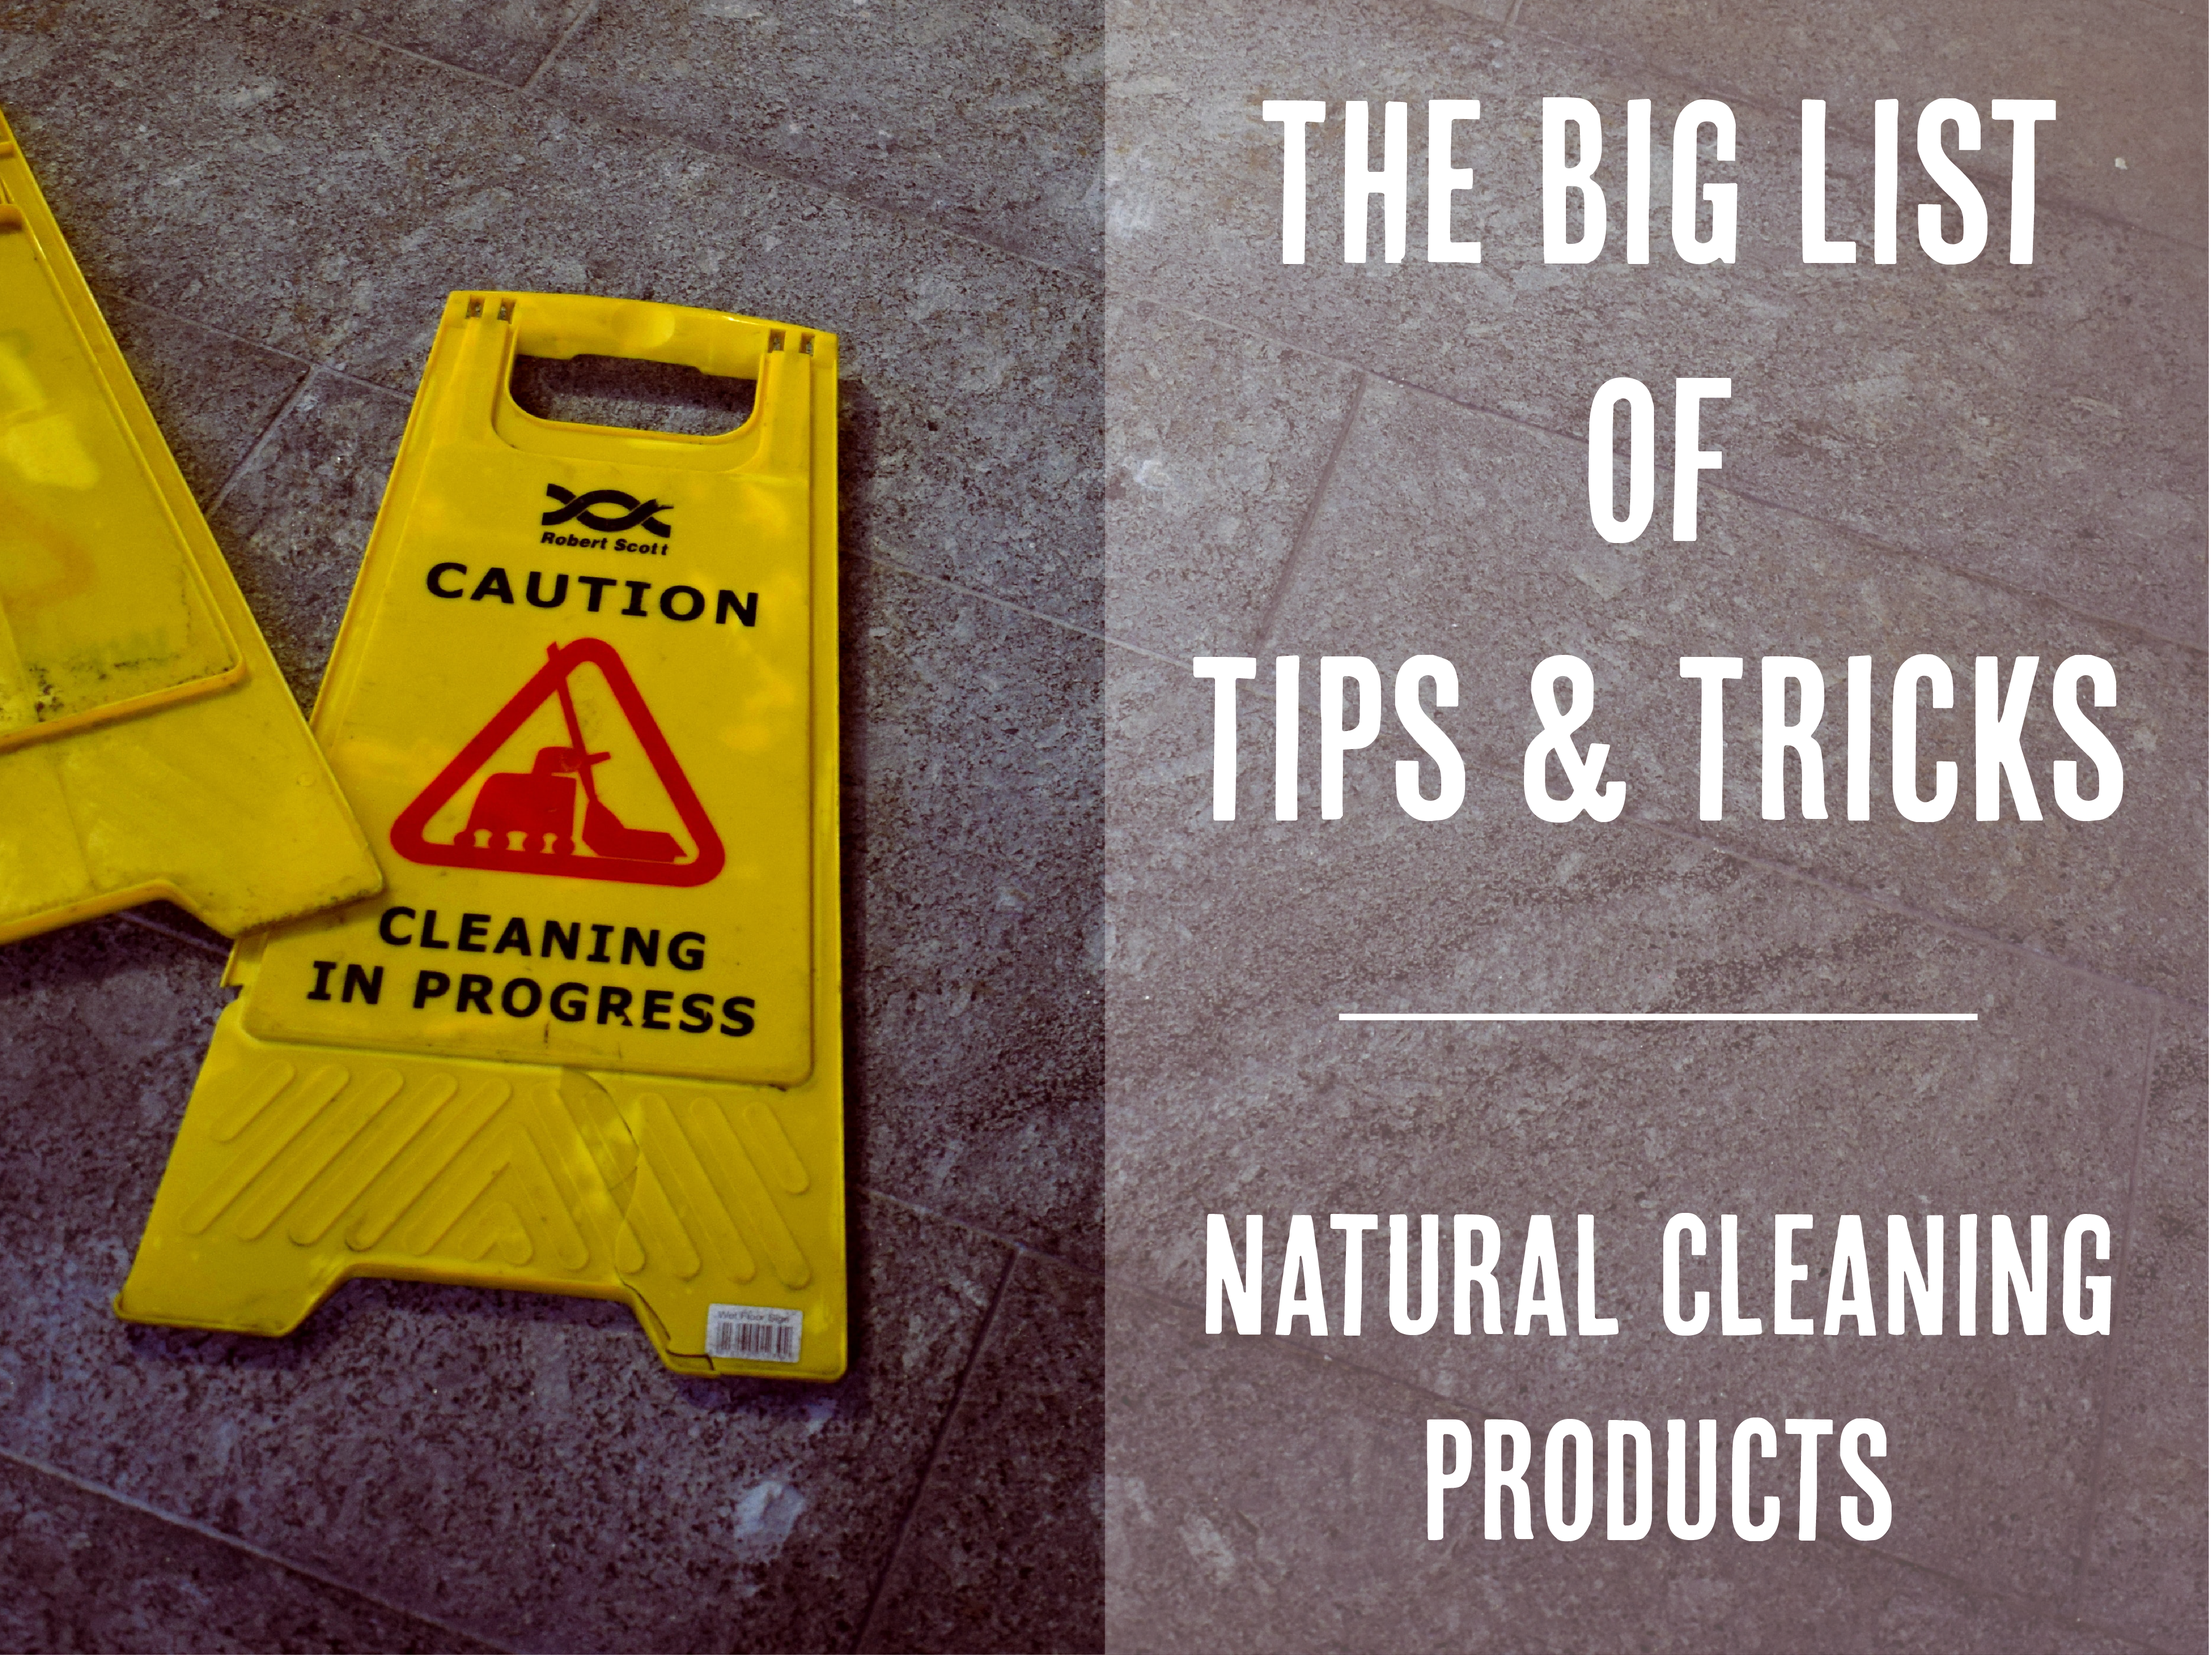 natural cleaning products tips and tricks bathroom vanity articles